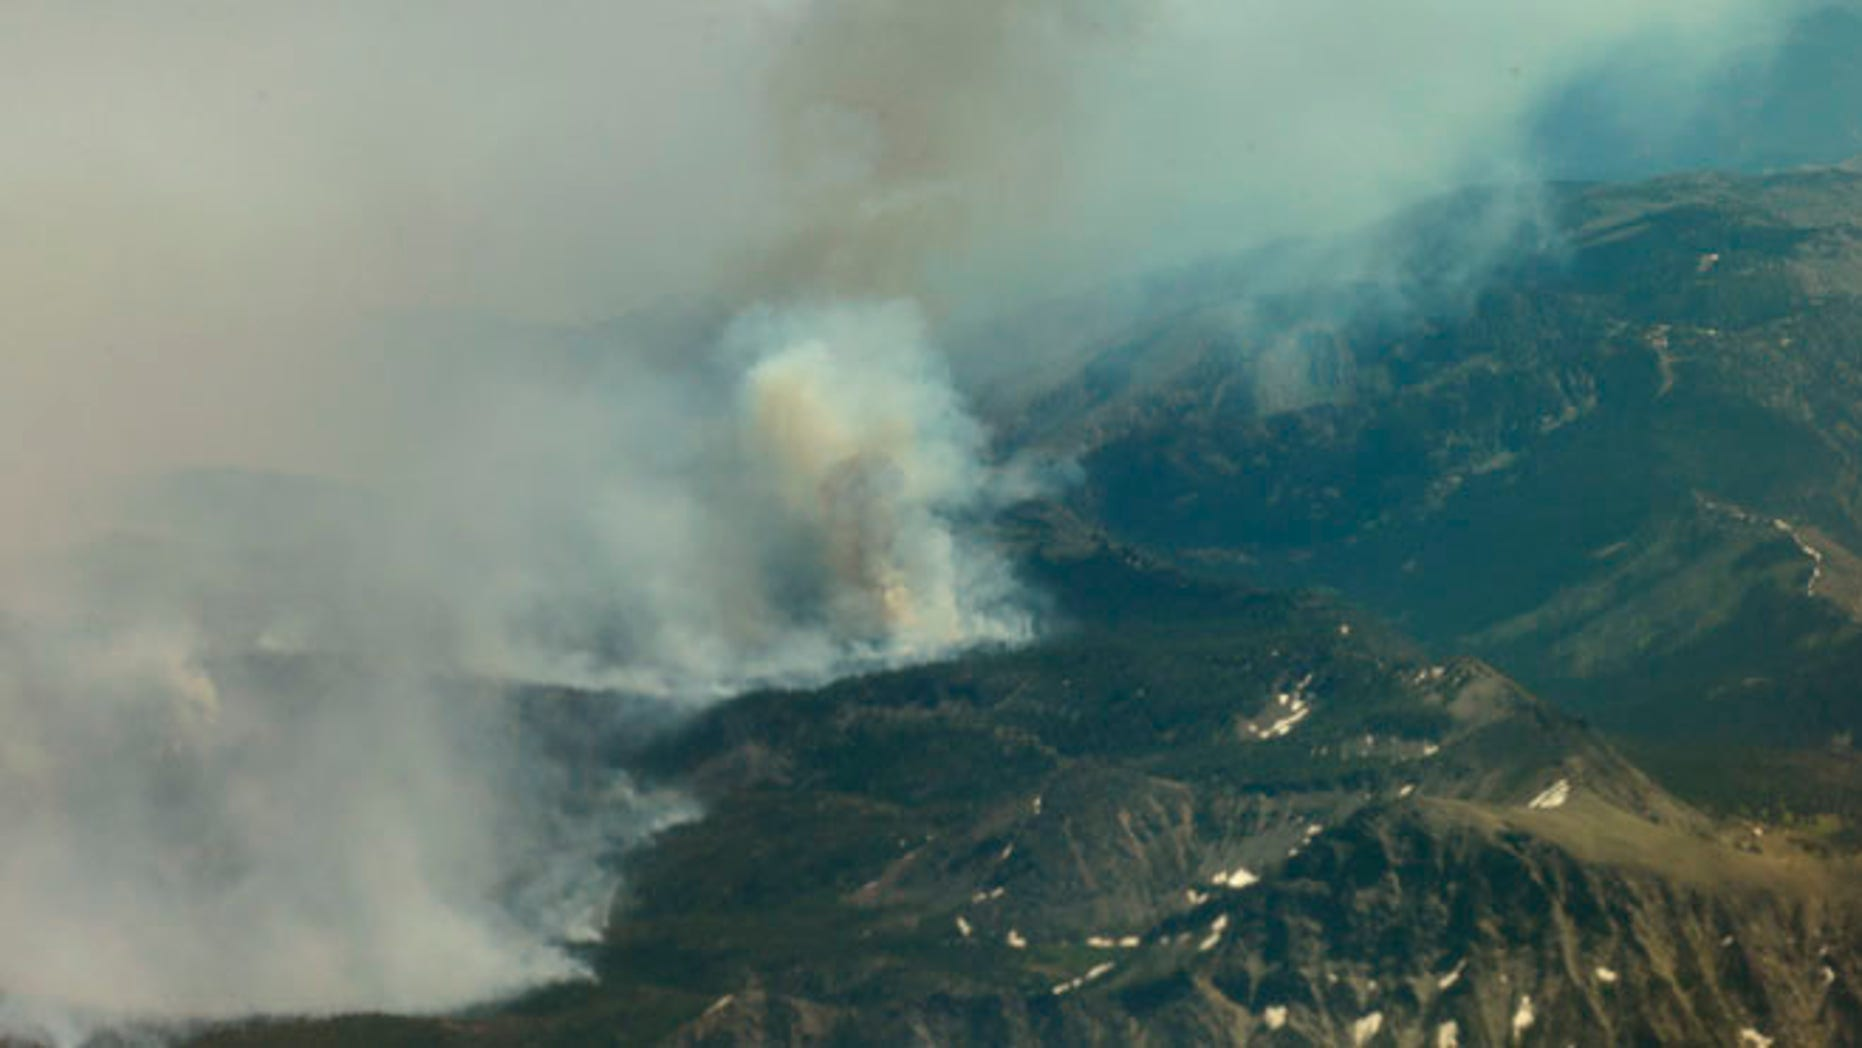 July 18, 2014: The Chiwaukum Creek Fire near Leavenworth, Wash. is viewed from a plane carrying Washington Gov. Jay Inslee on a tour of areas being affected by wildfires. (AP)